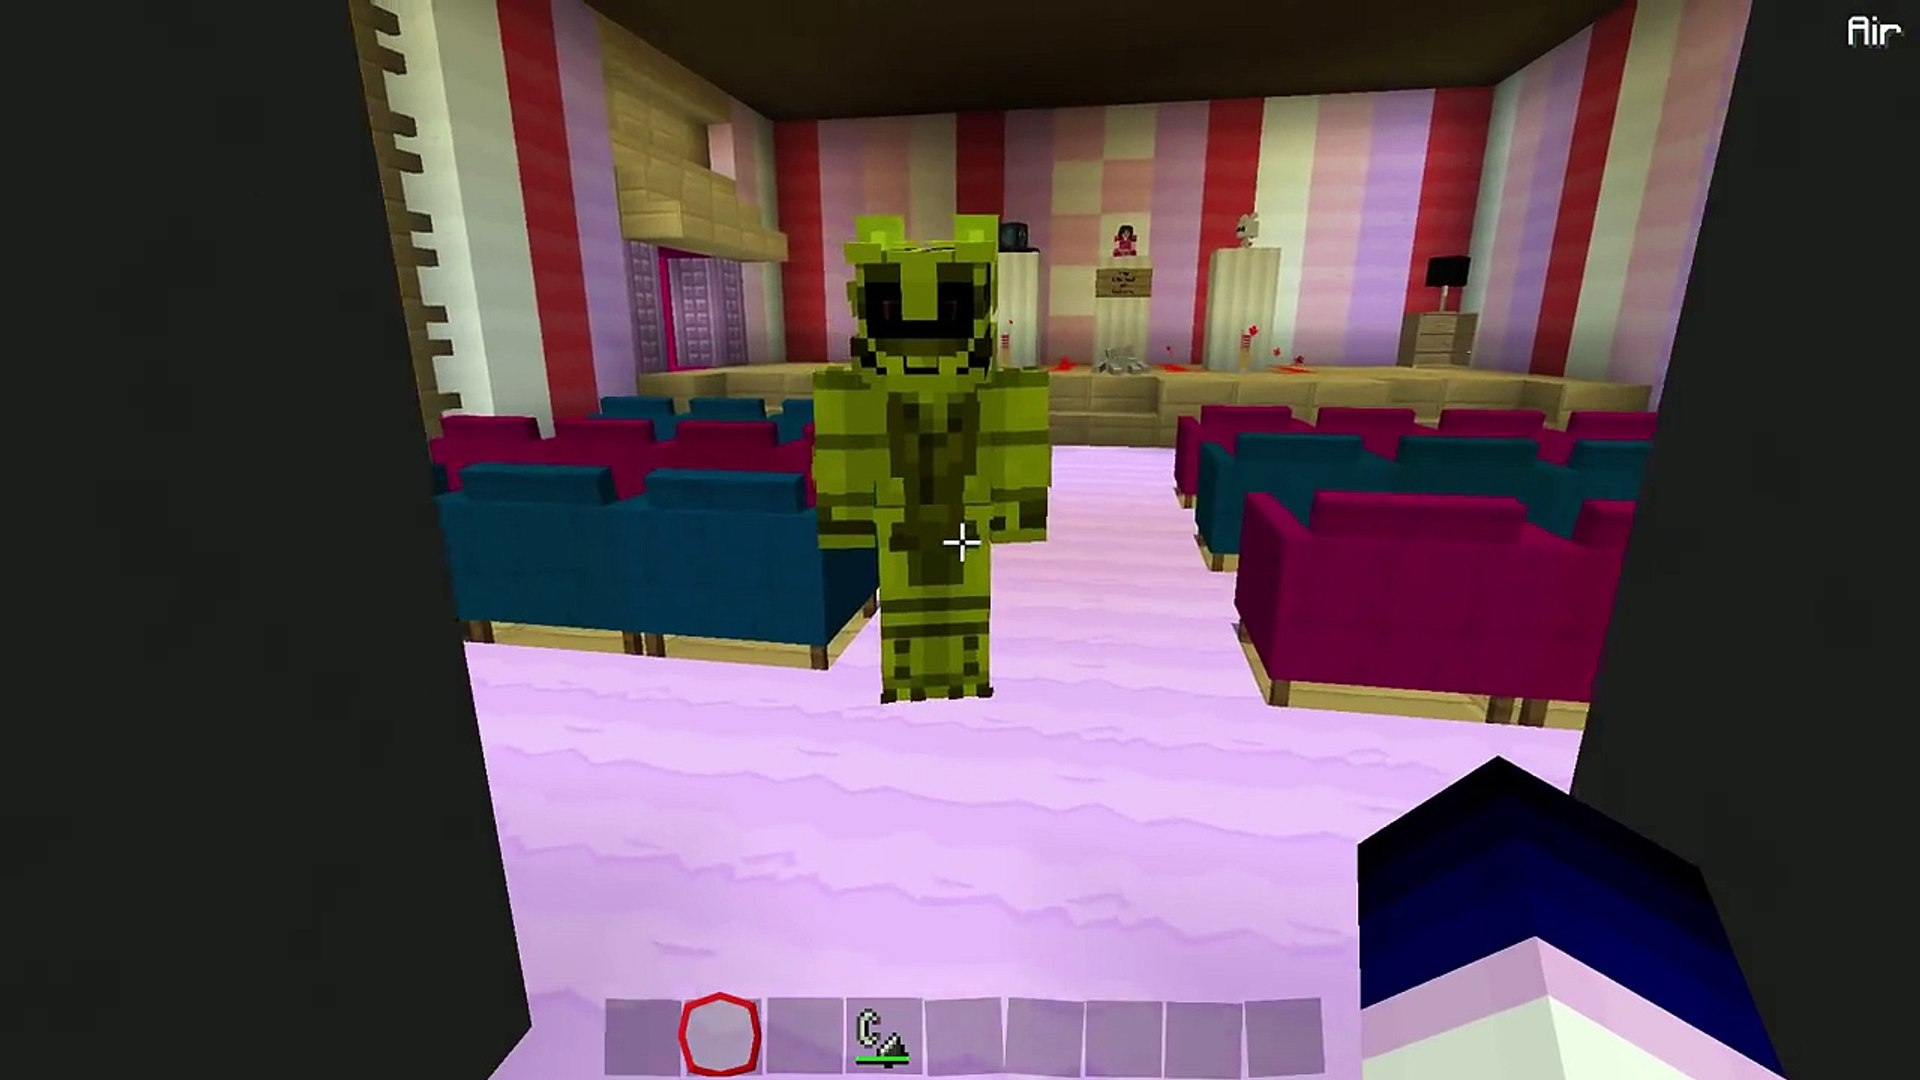 Gallant Gaming Fnaf Roblox Sistler Location Golden Funtime Foxy Jumpscare Minecraft Fnaf Roleplay Dailymotion Video